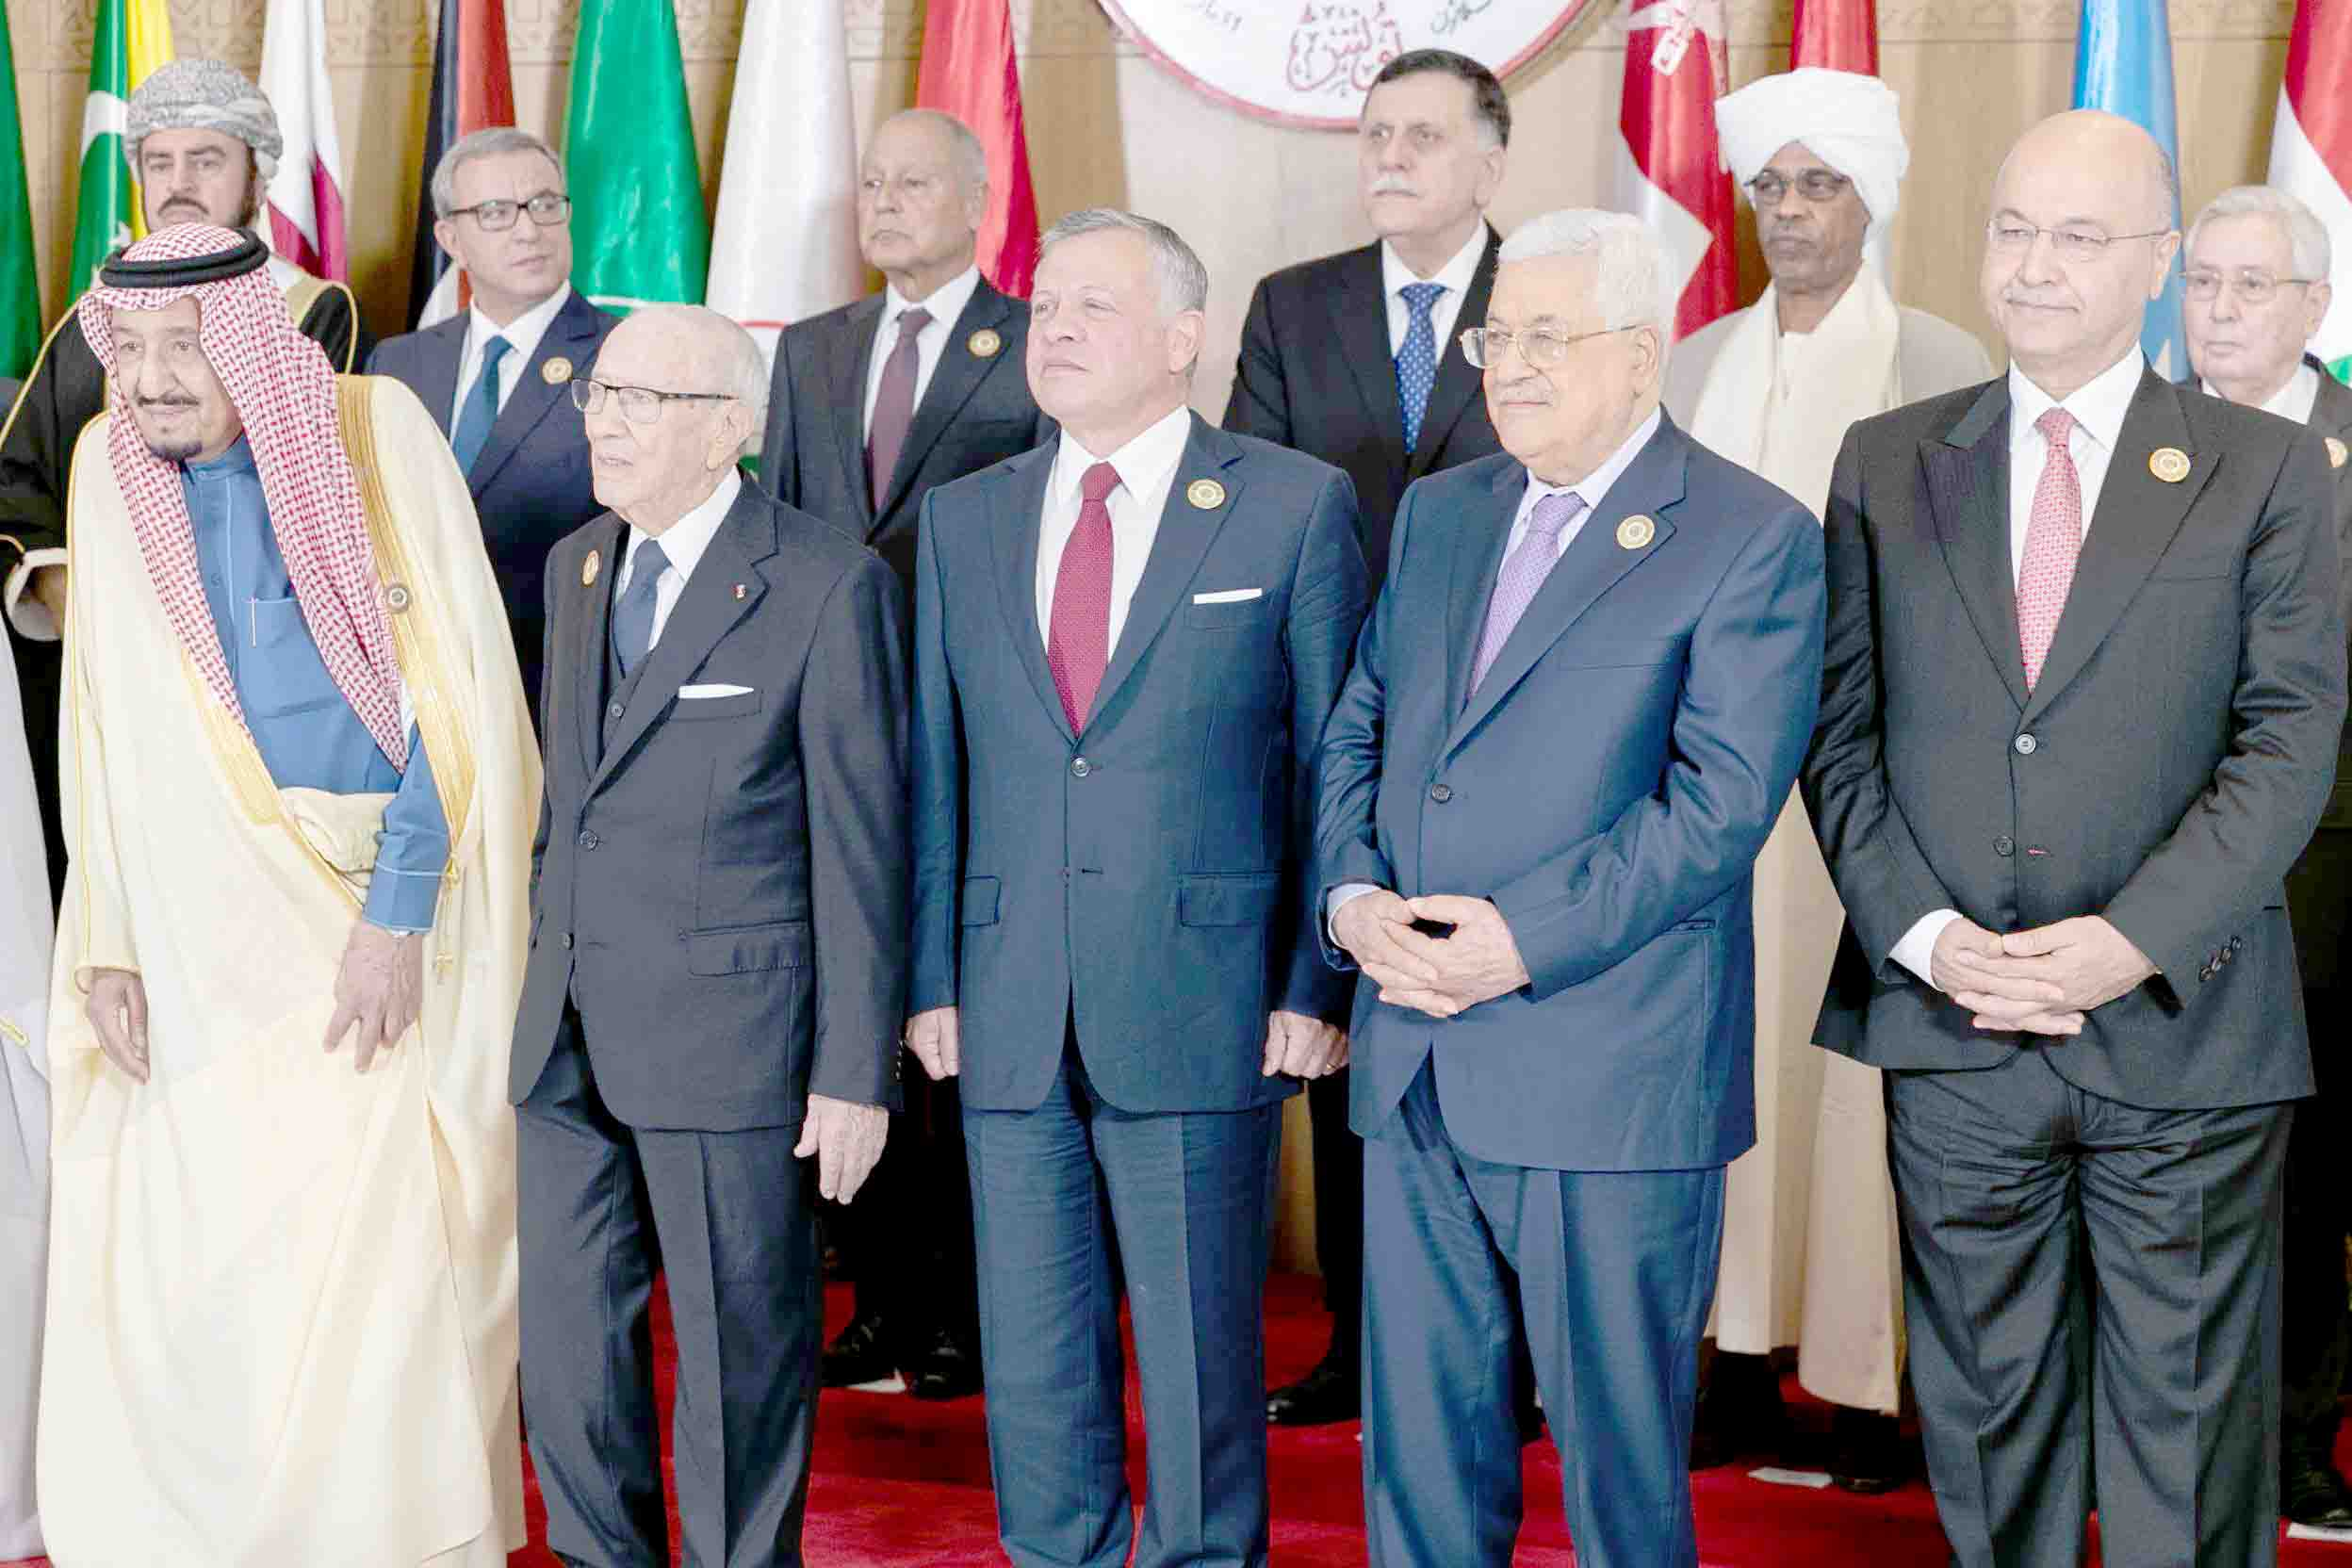 Arab leaders pose for a family picture during the 30th Arab League Summit in Tunis, March 31. (dpa)